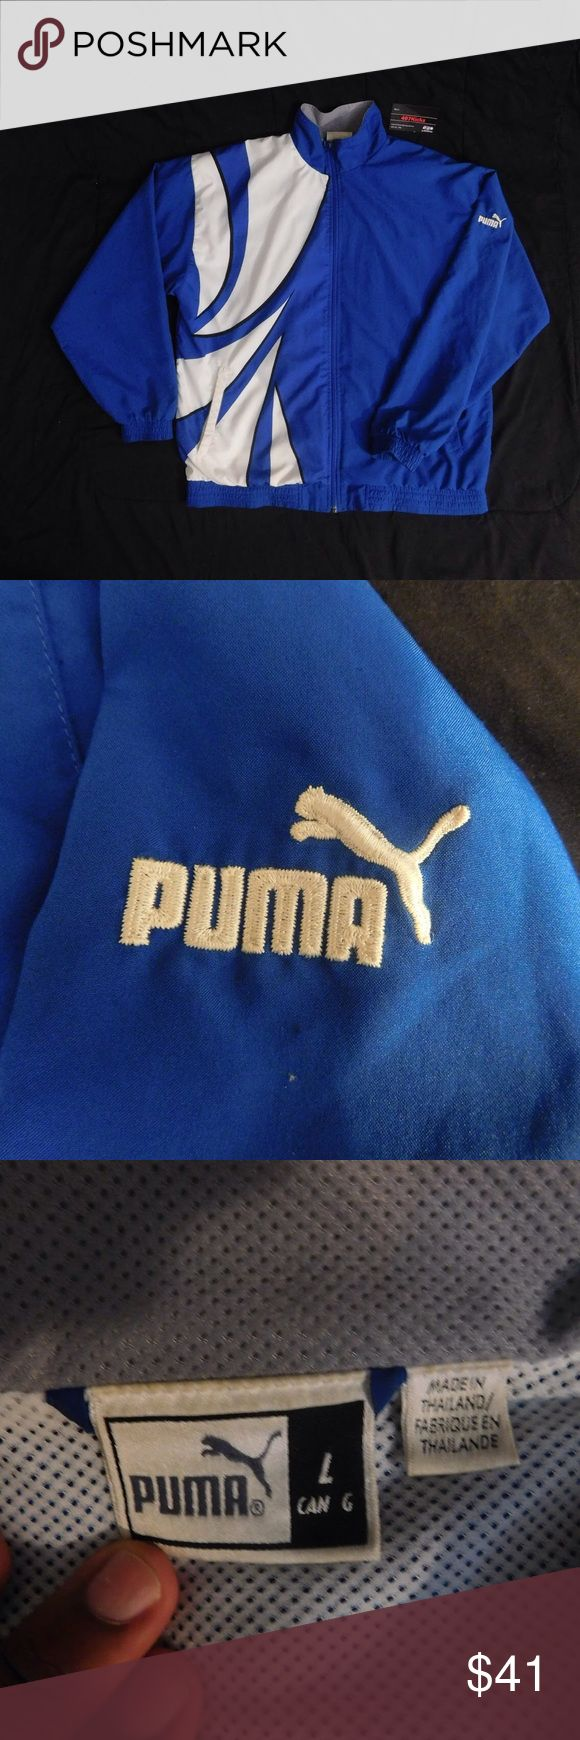 Vintage Puma Jacket USED Vintage Puma Royal Blue White Full Zip Windbreaker Jacket | MENS Size Large | Good condition, minor stains as pictured  --------------------------------------------------   For Discounts Follow Me on Instagram, Facebook and Twitter @407kickz !    KEYWORDS/TAGS: ultra boost , Tommy Hilfiger , Polo Sport , Nautica , NMD , supreme , kith , bred , adidas , banned , french blue , stussy , Maestro , vintage , kaws , solefly , trophy room , box logo  , rare , nike air…